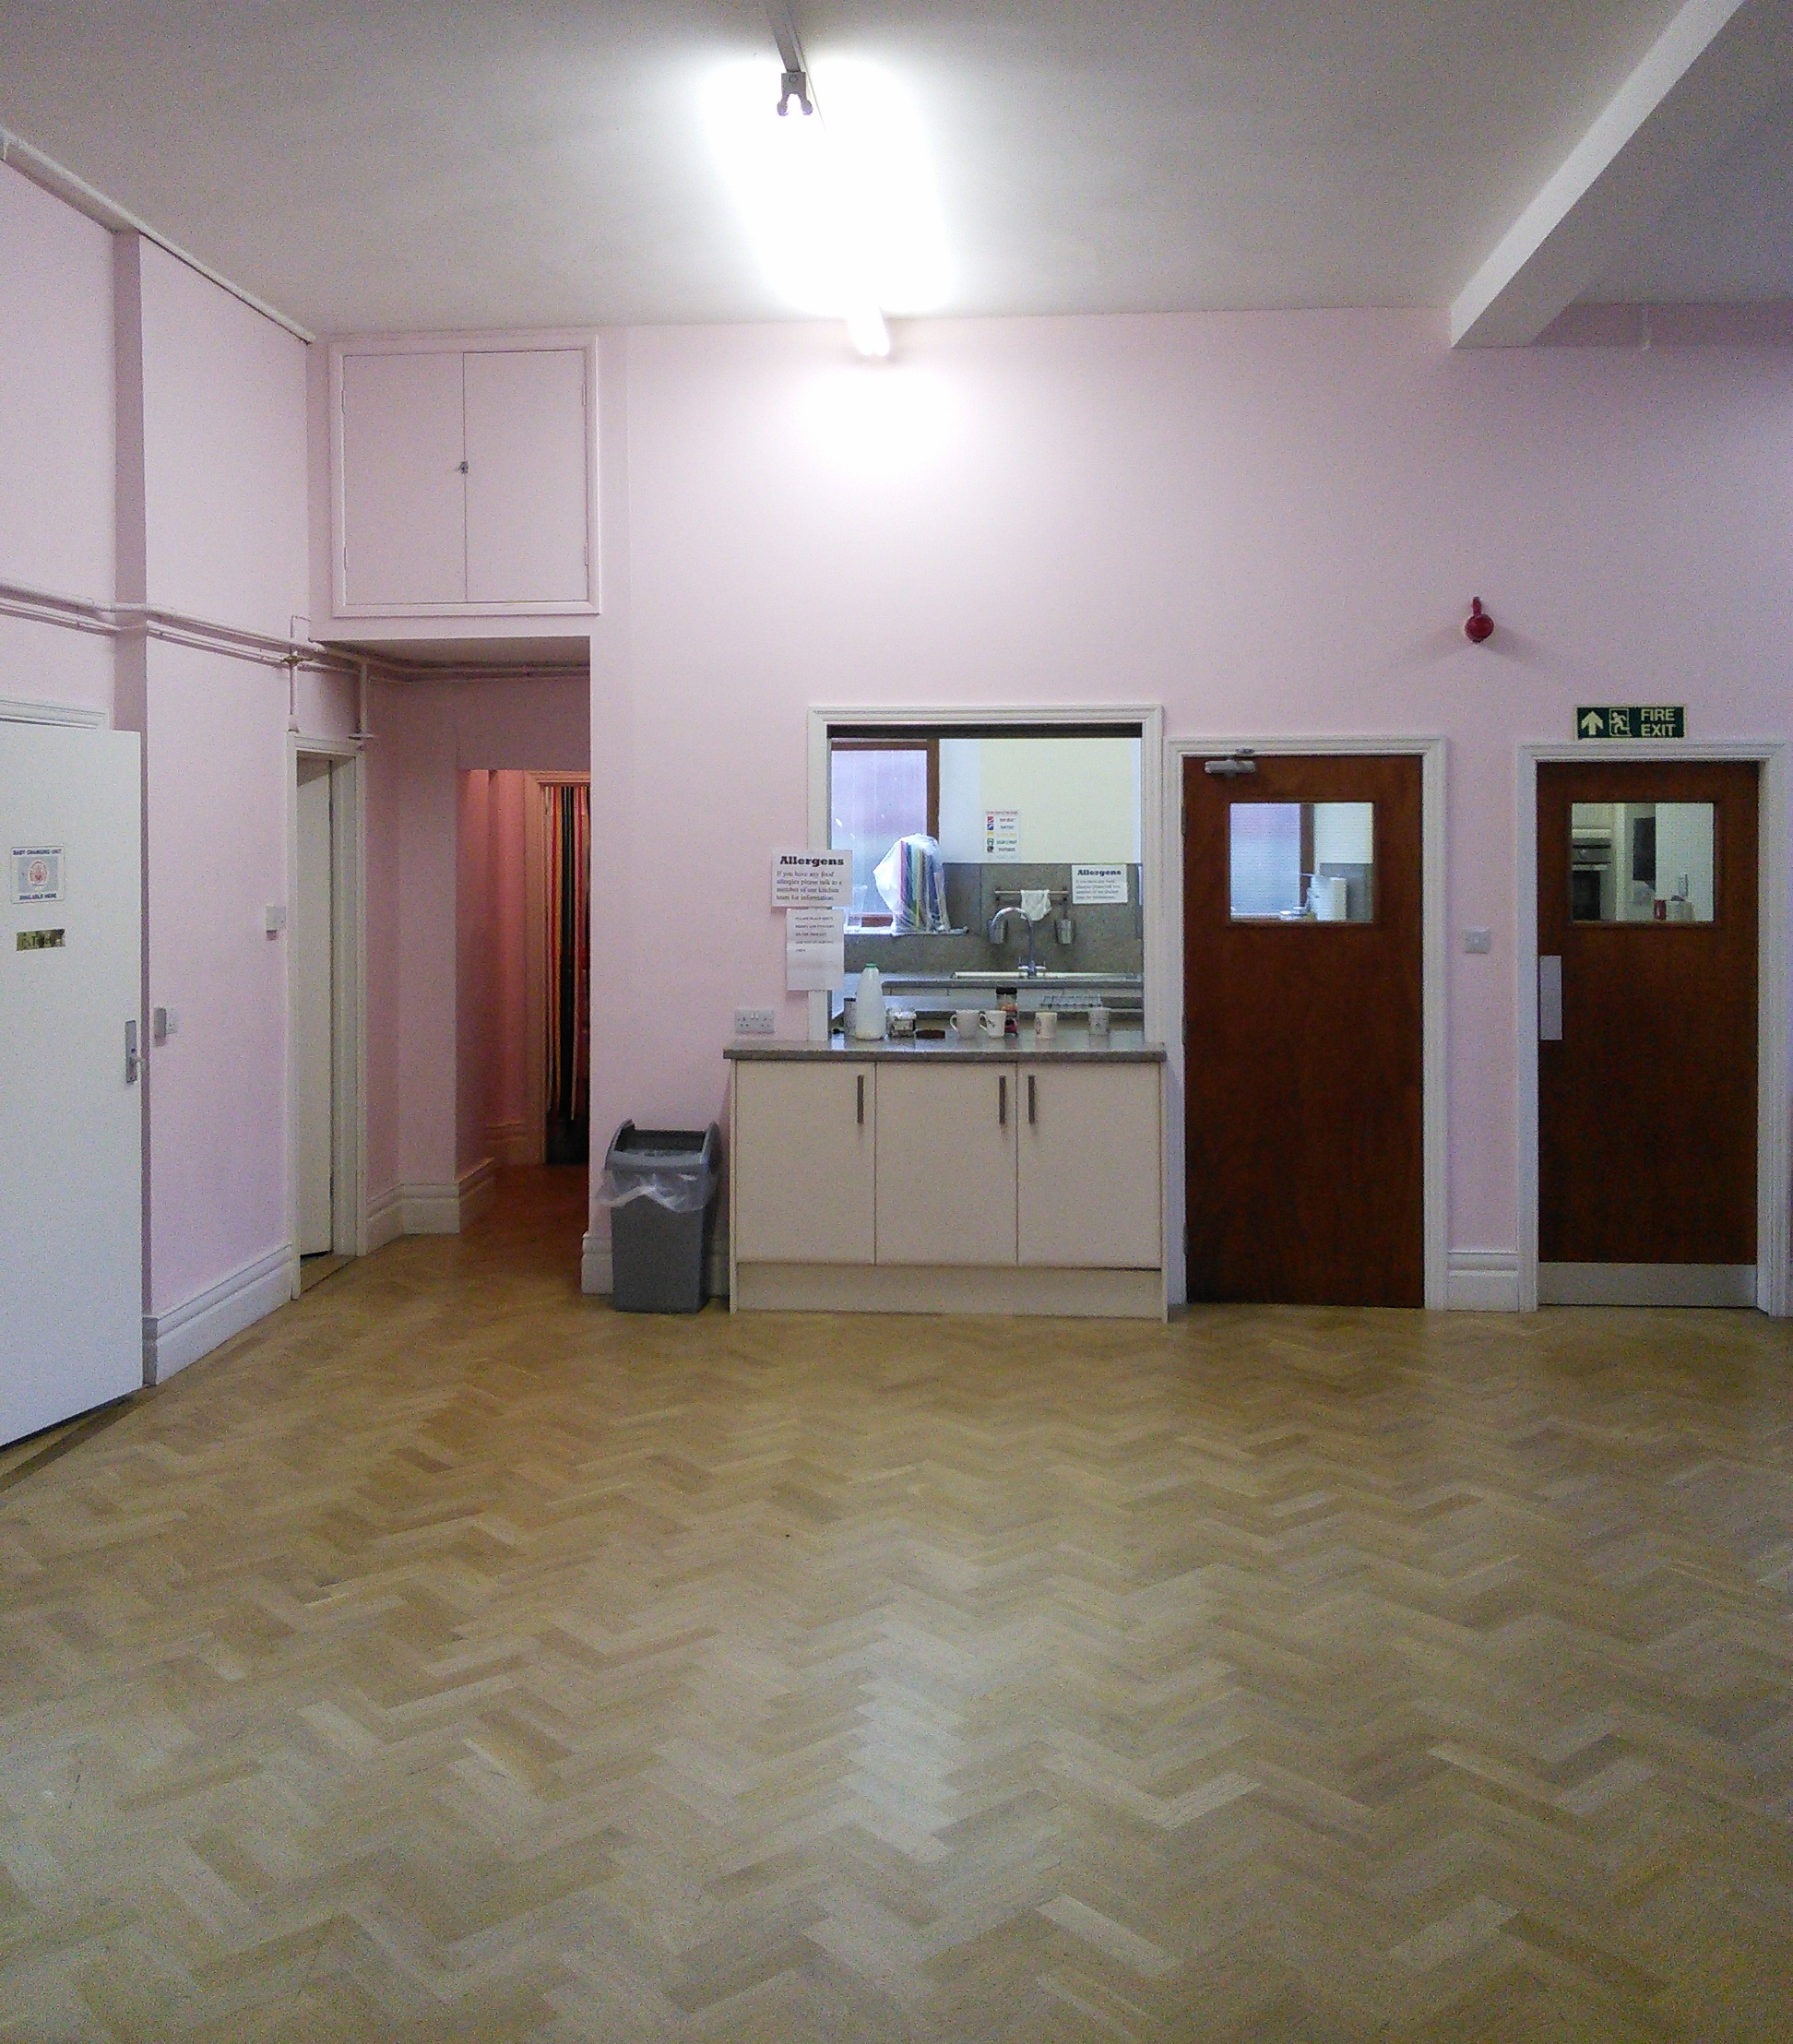 Home Group Newcastle Foyer : Hall rental welcome to st andrew s church of scotland in